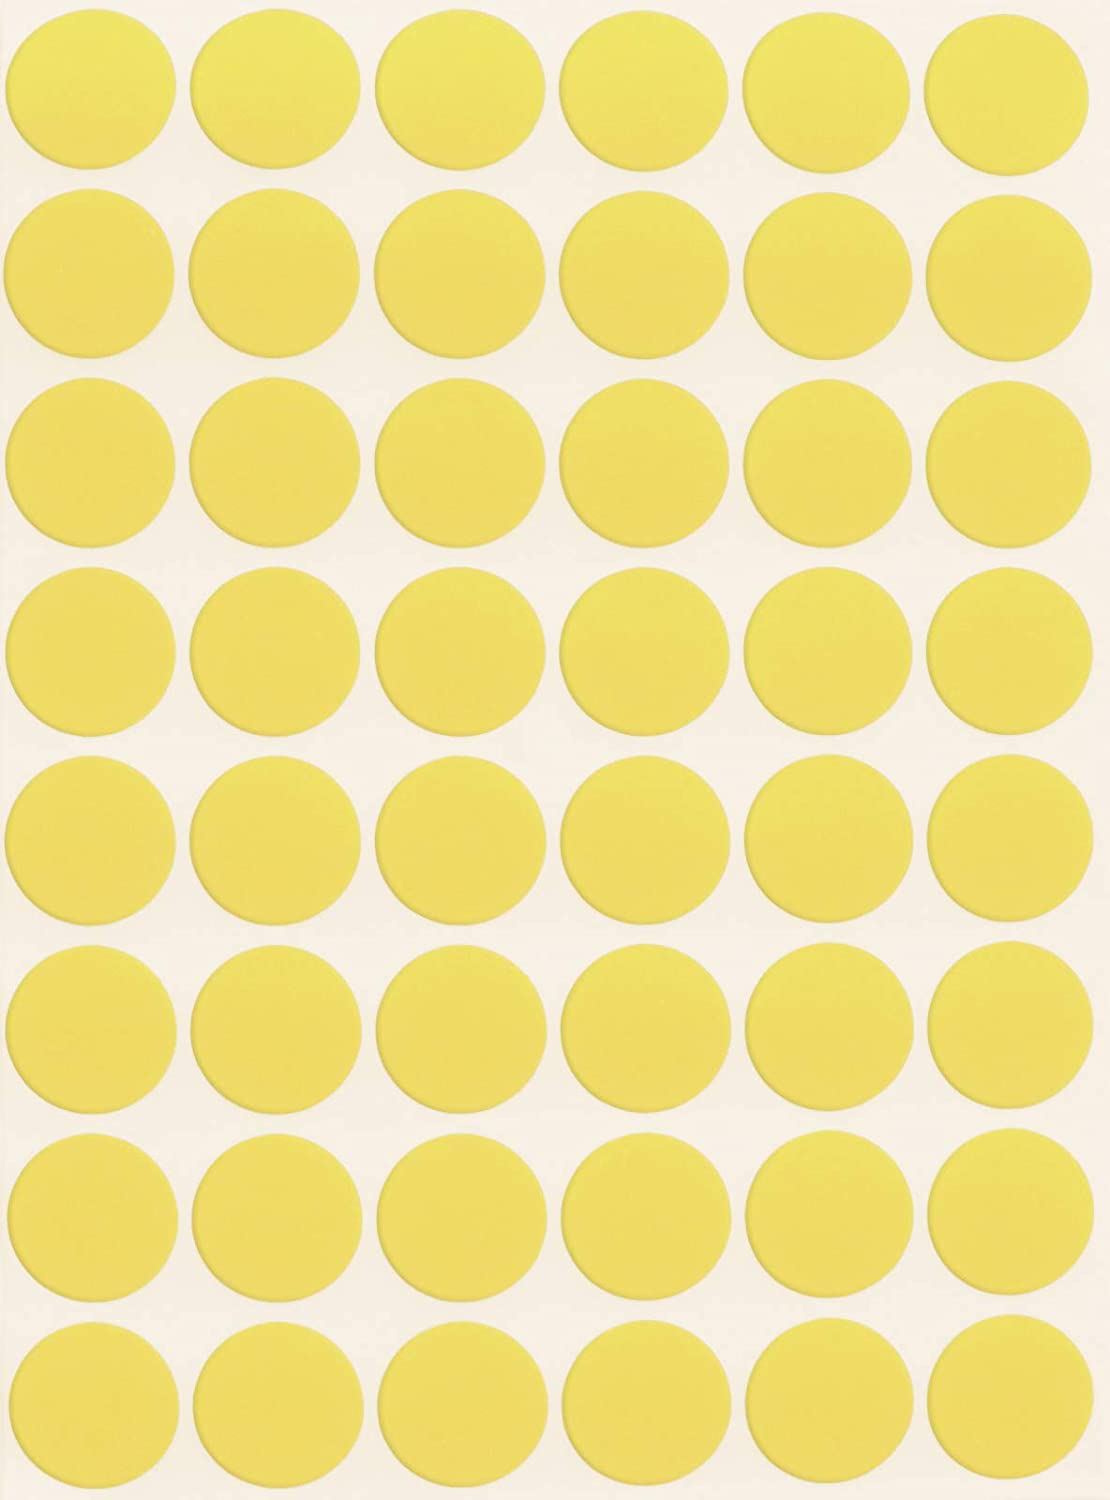 1000 YELLOW STICKERS 12MM DIA COLOURED ROUND SELF ADHESIVE LABELS STICKY DOTS